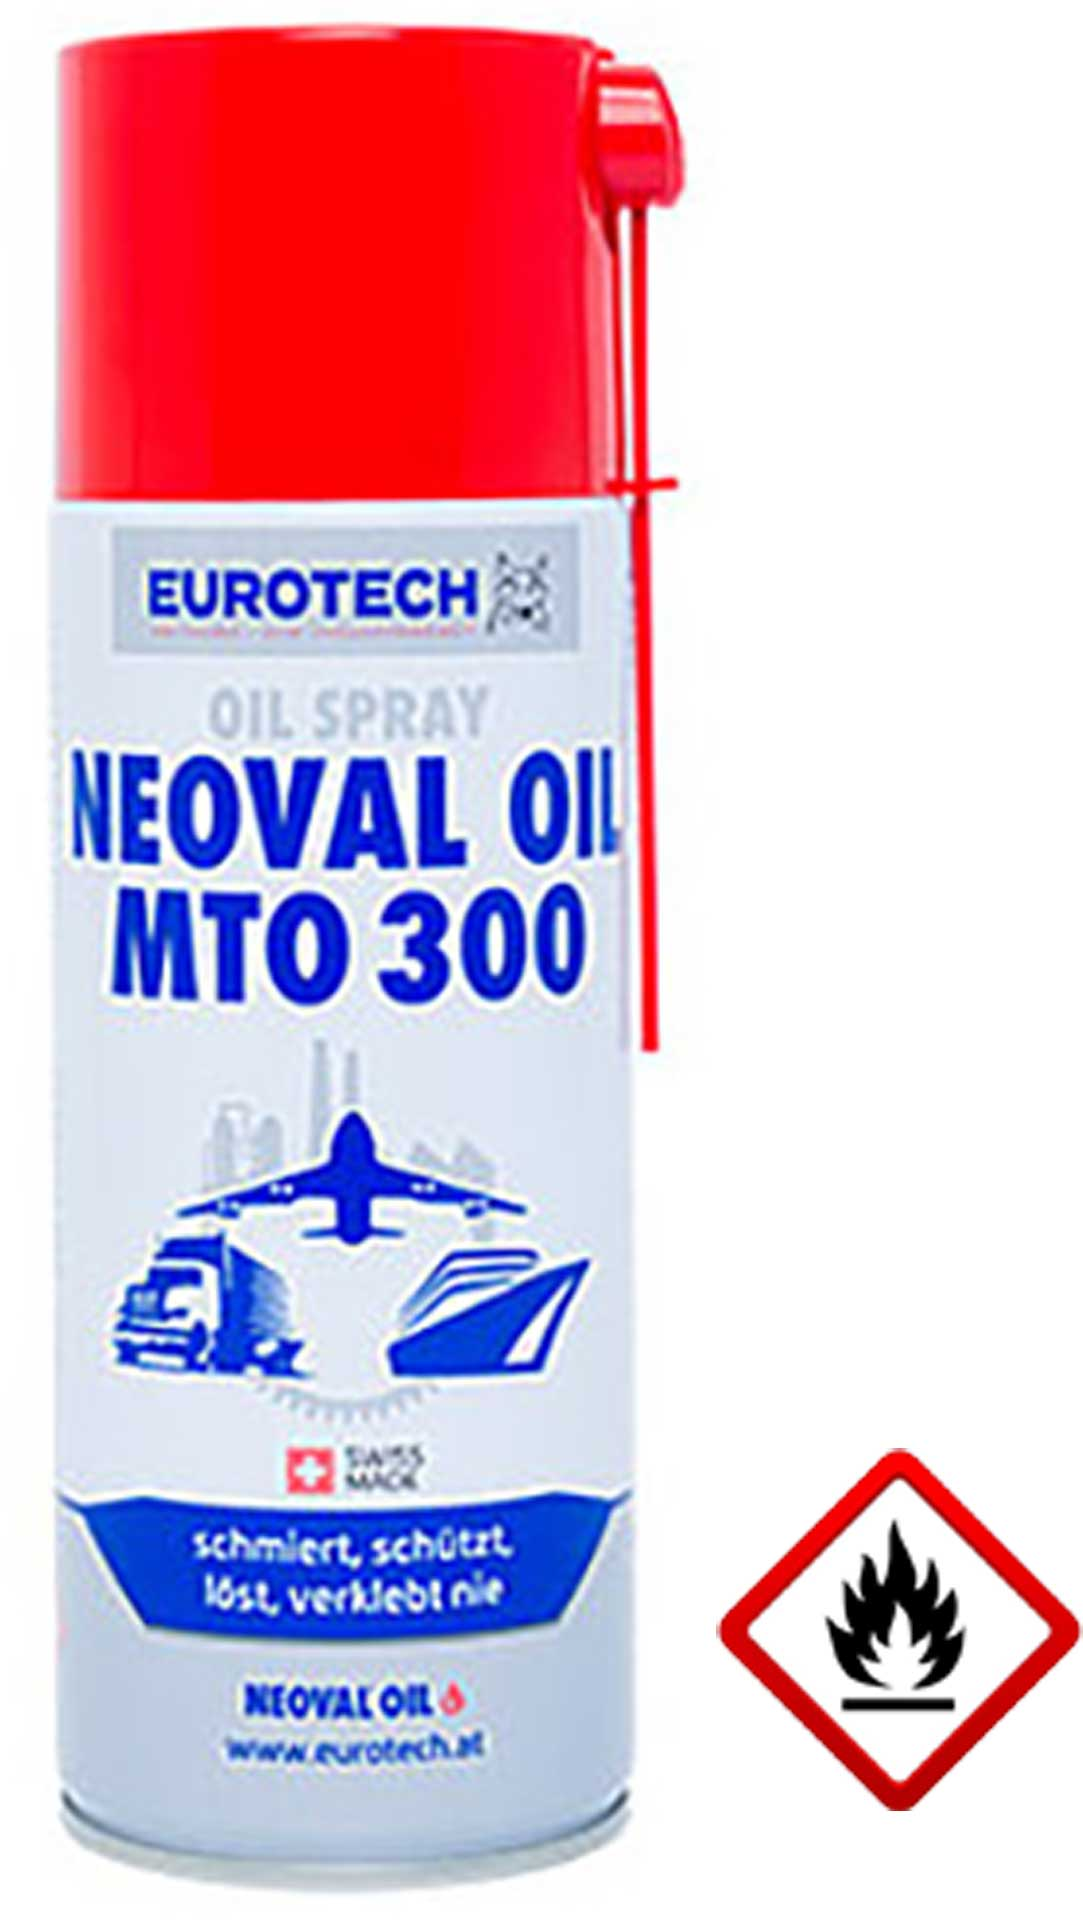 EUROTECH NEOVAL OIL MTO 300 400ML